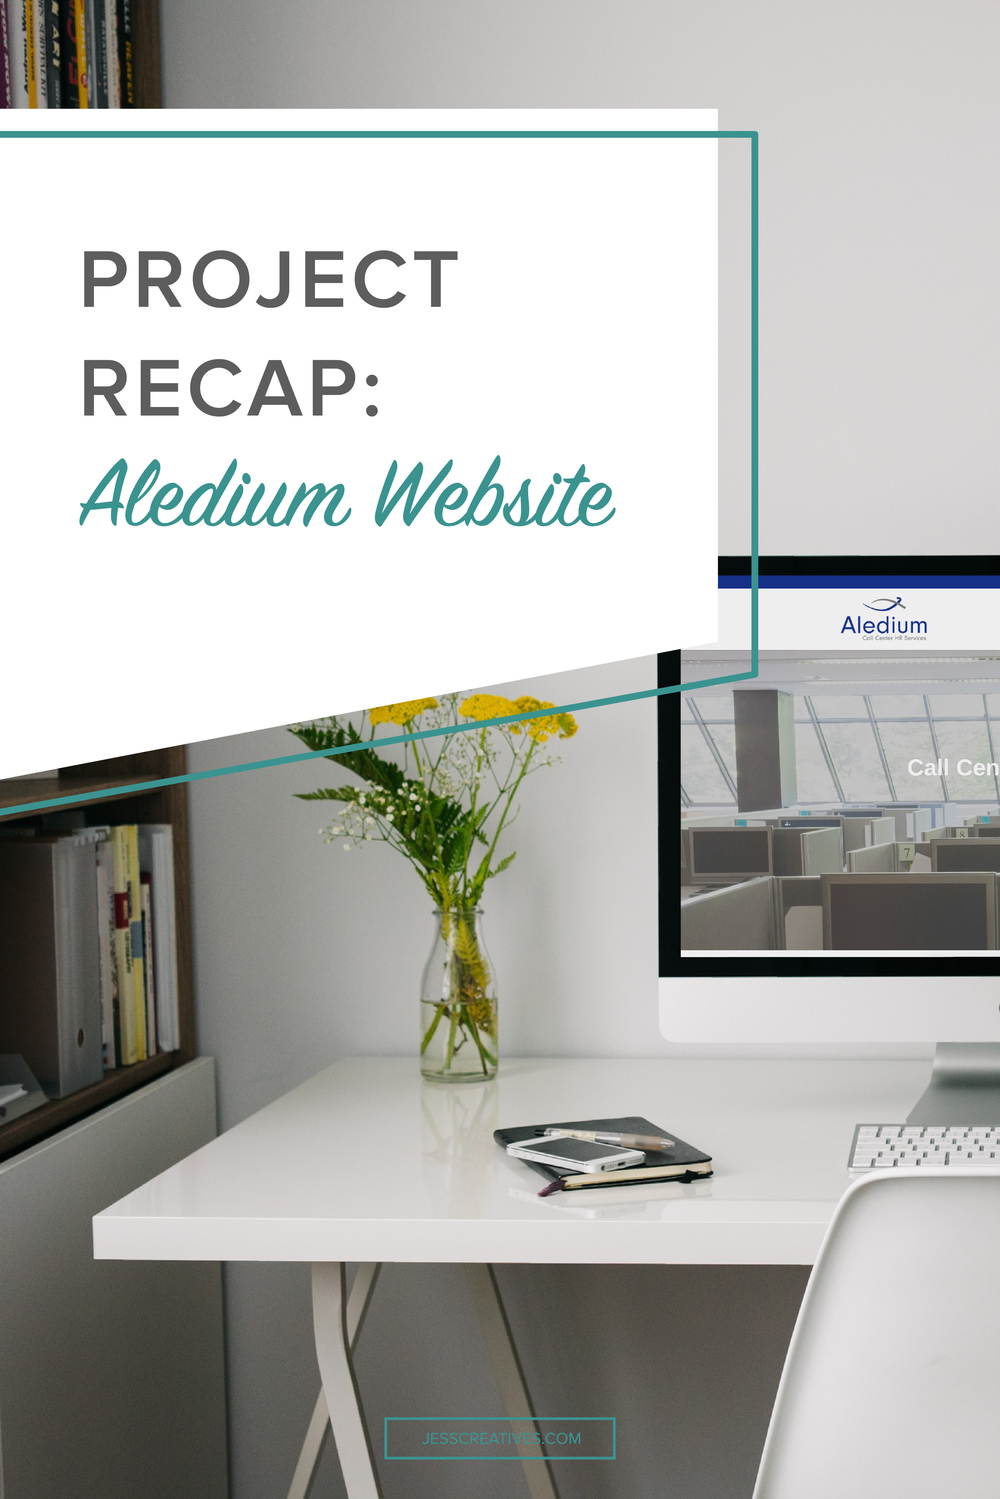 Project Recap: Aledium Website